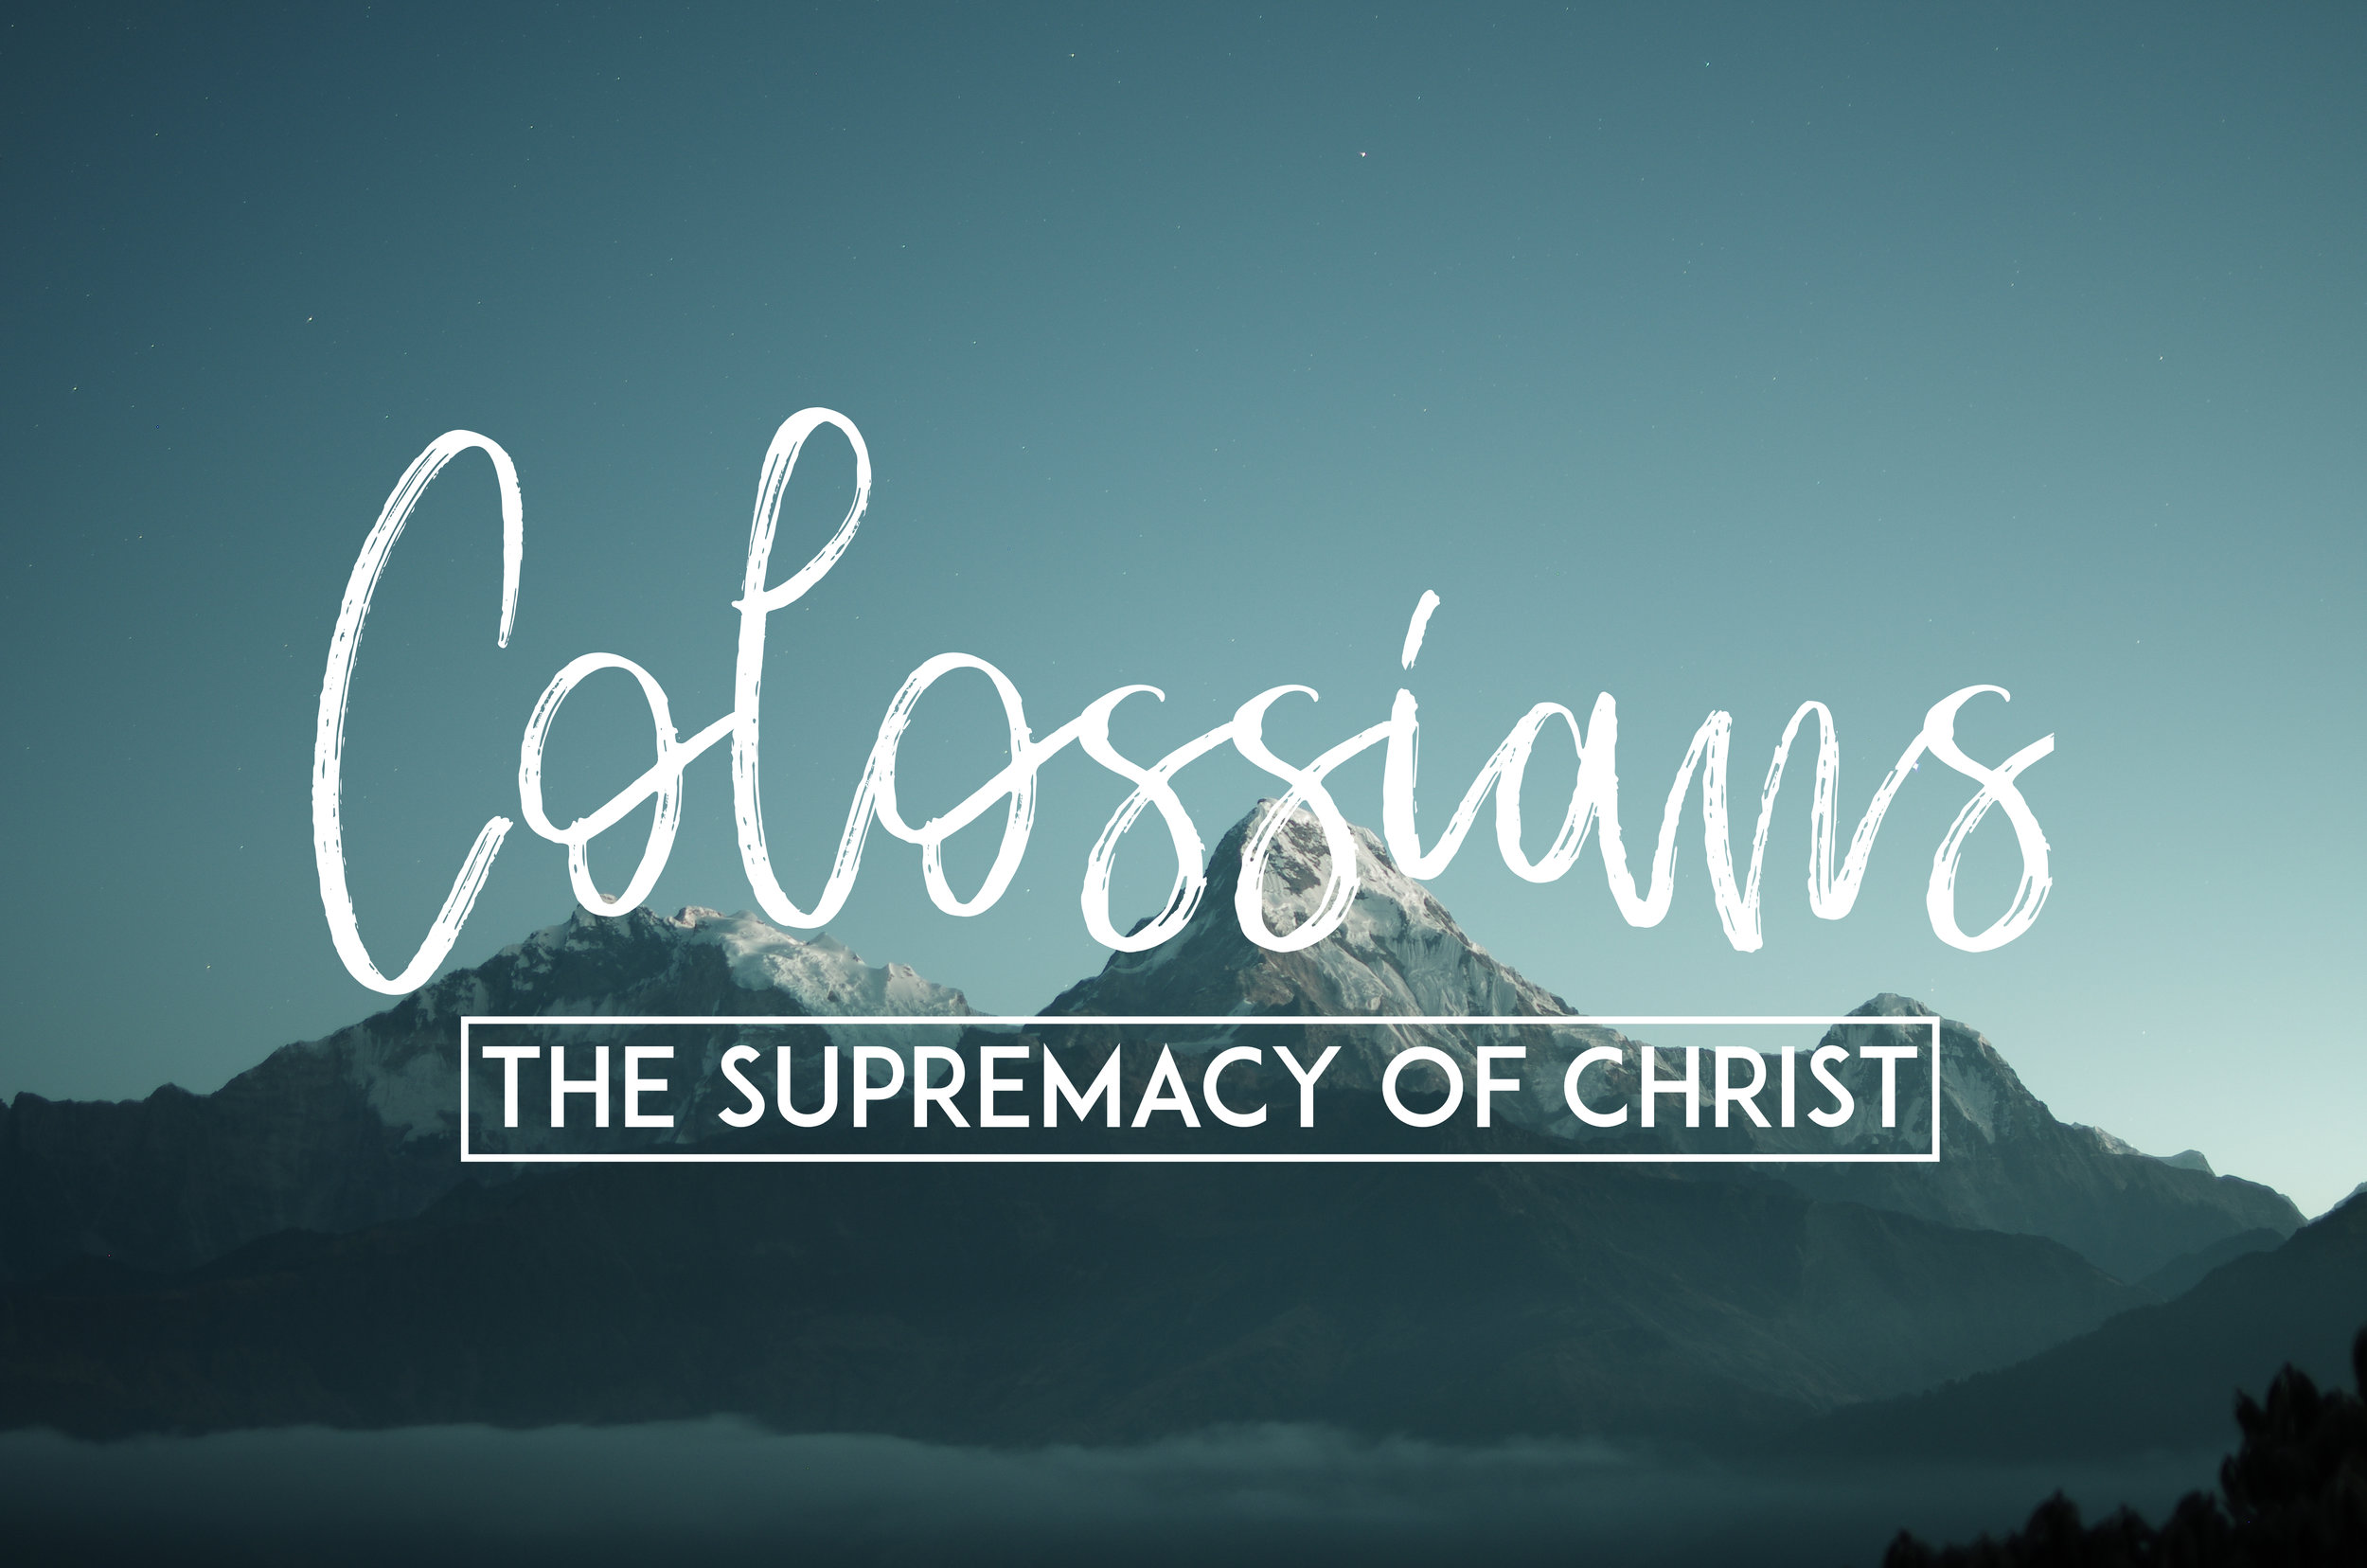 Colossians Graphic.jpg